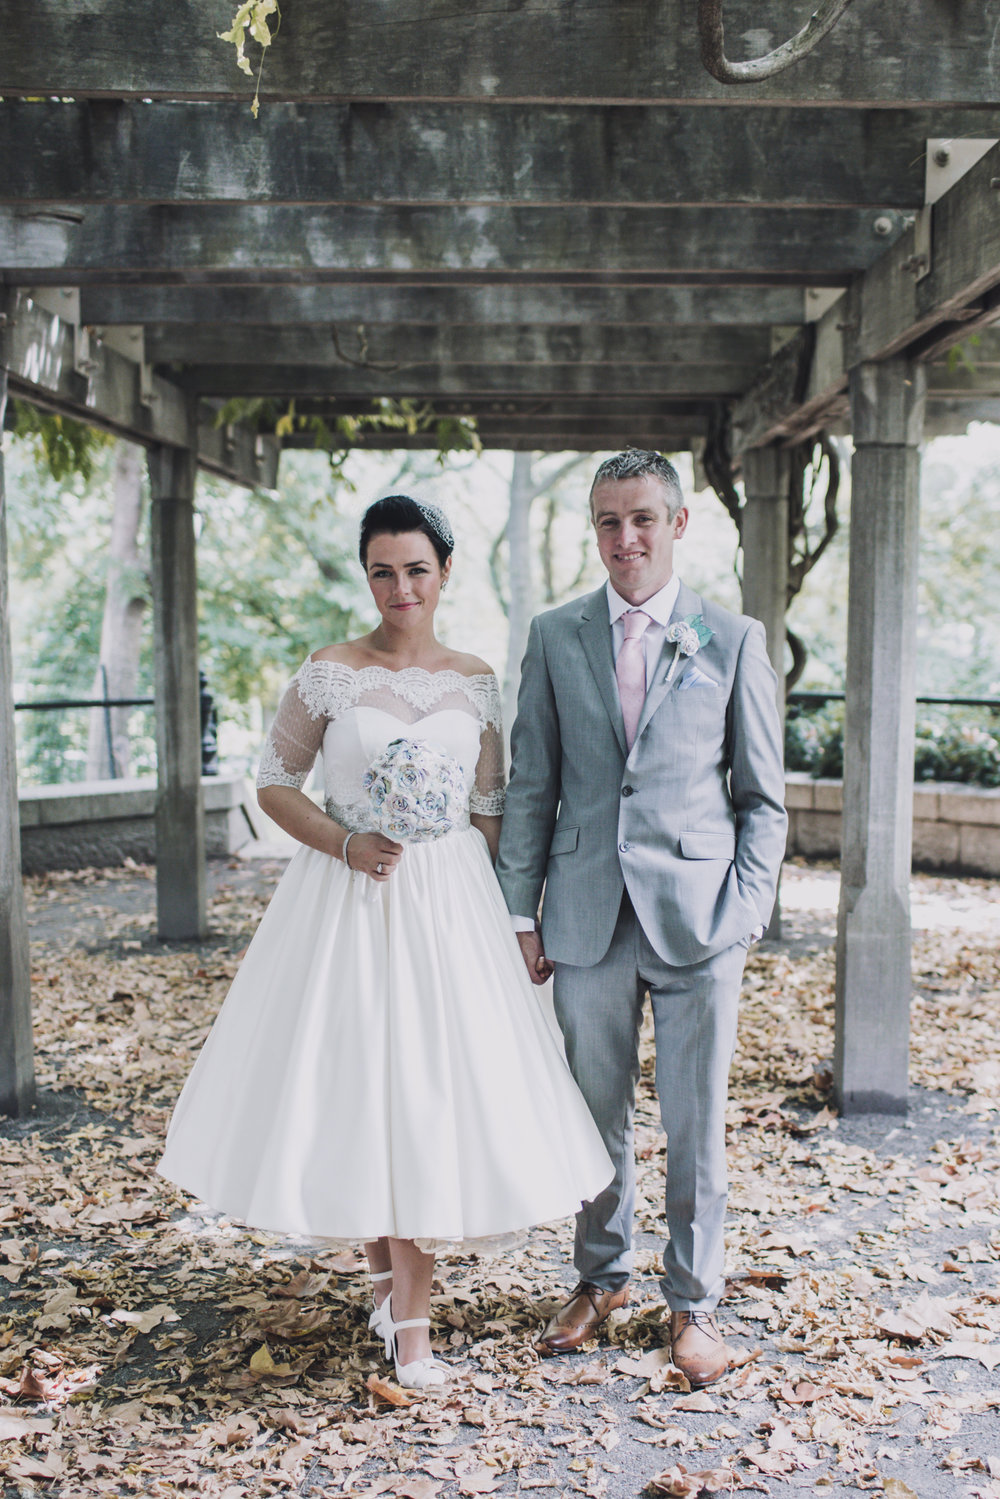 20140822-031-Central_Park_Irish_Elopement.jpg